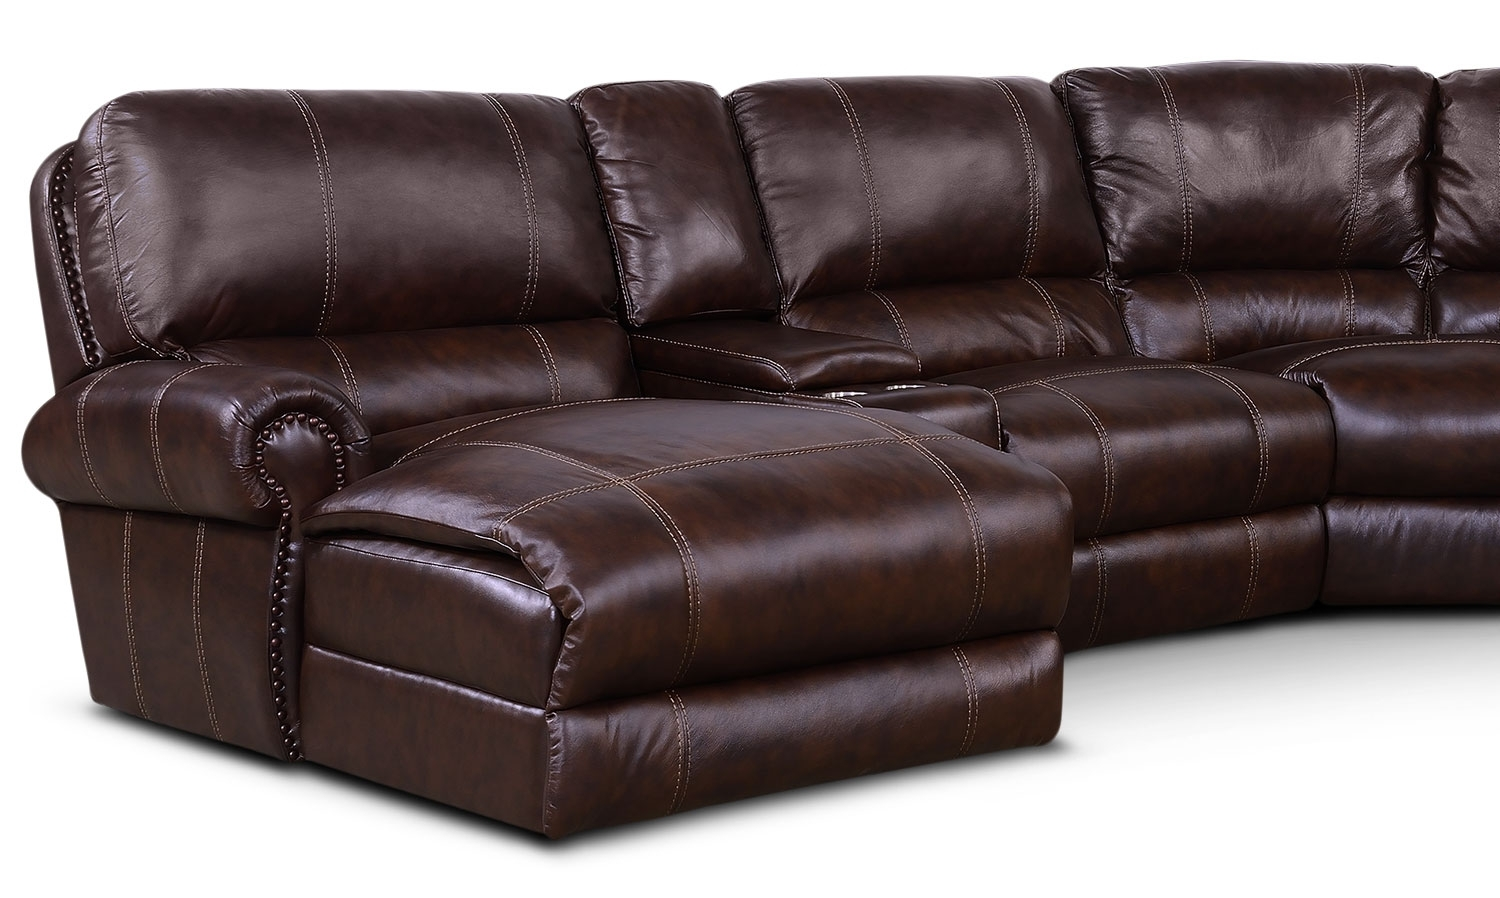 Dartmouth 6 Piece Power Reclining Sectional W/ Left Facing Chaise Throughout Norfolk Chocolate 3 Piece Sectionals With Laf Chaise (Image 9 of 25)